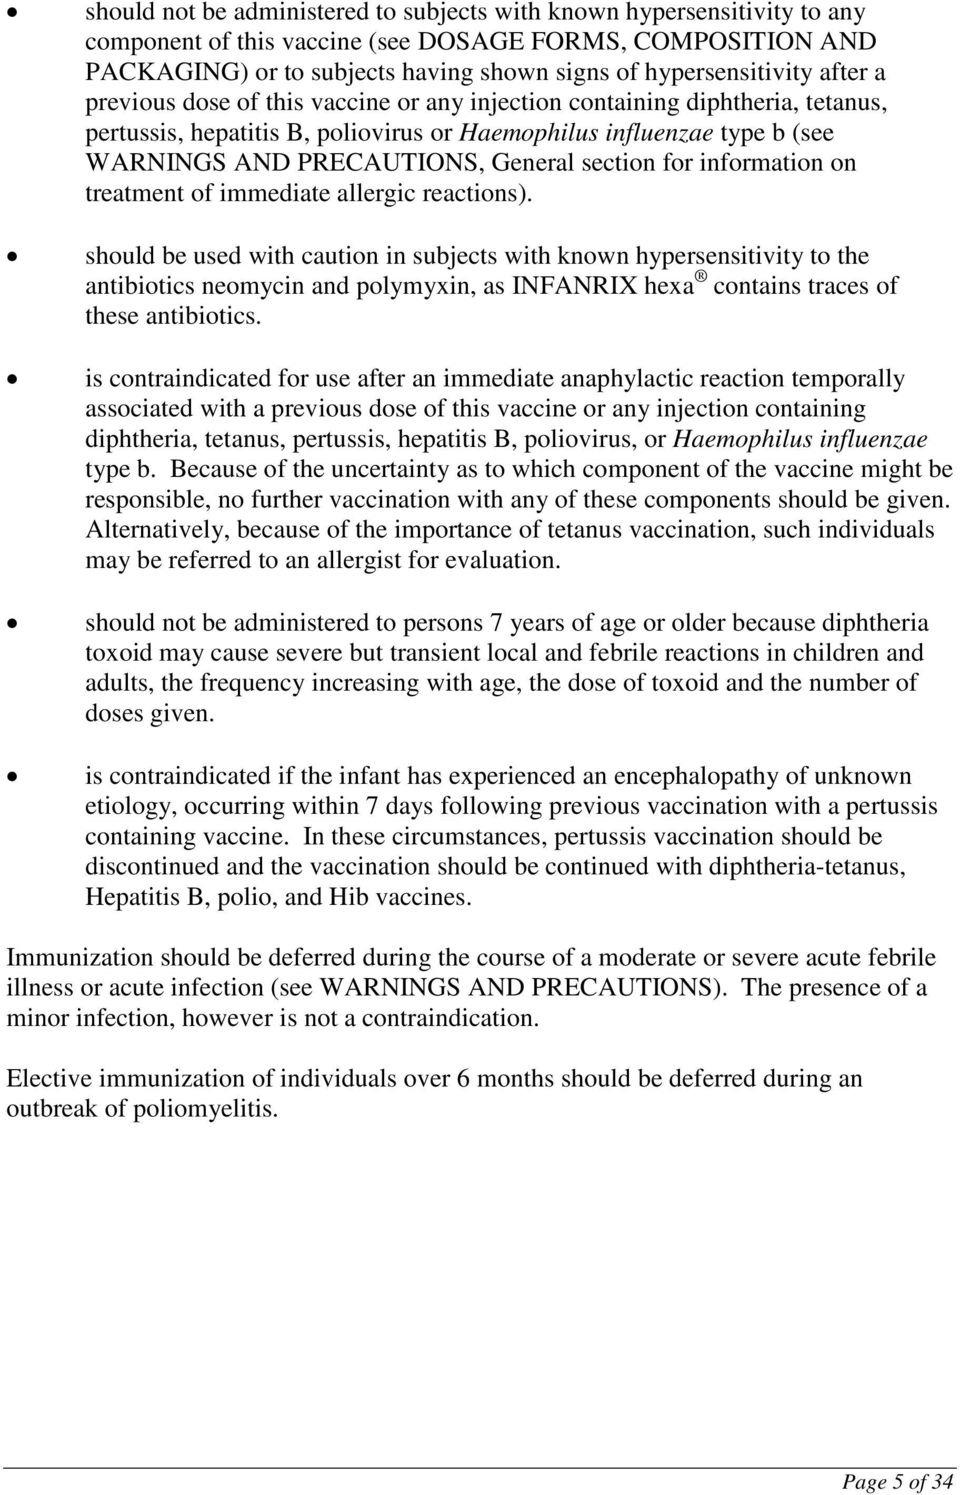 section for information on treatment of immediate allergic reactions).